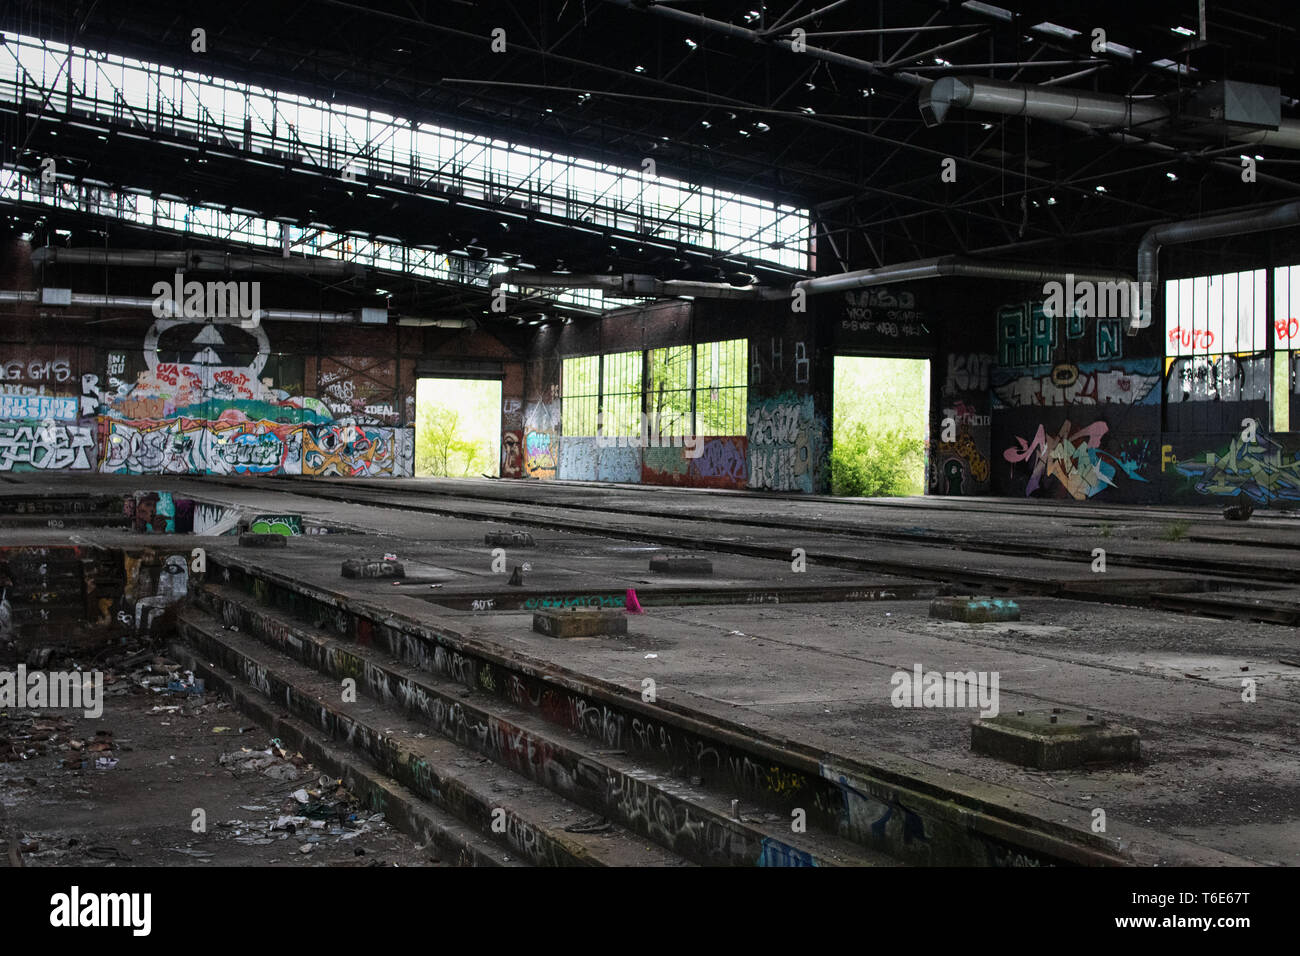 Old station, lost place in Dortmund (Germany) - Stock Image